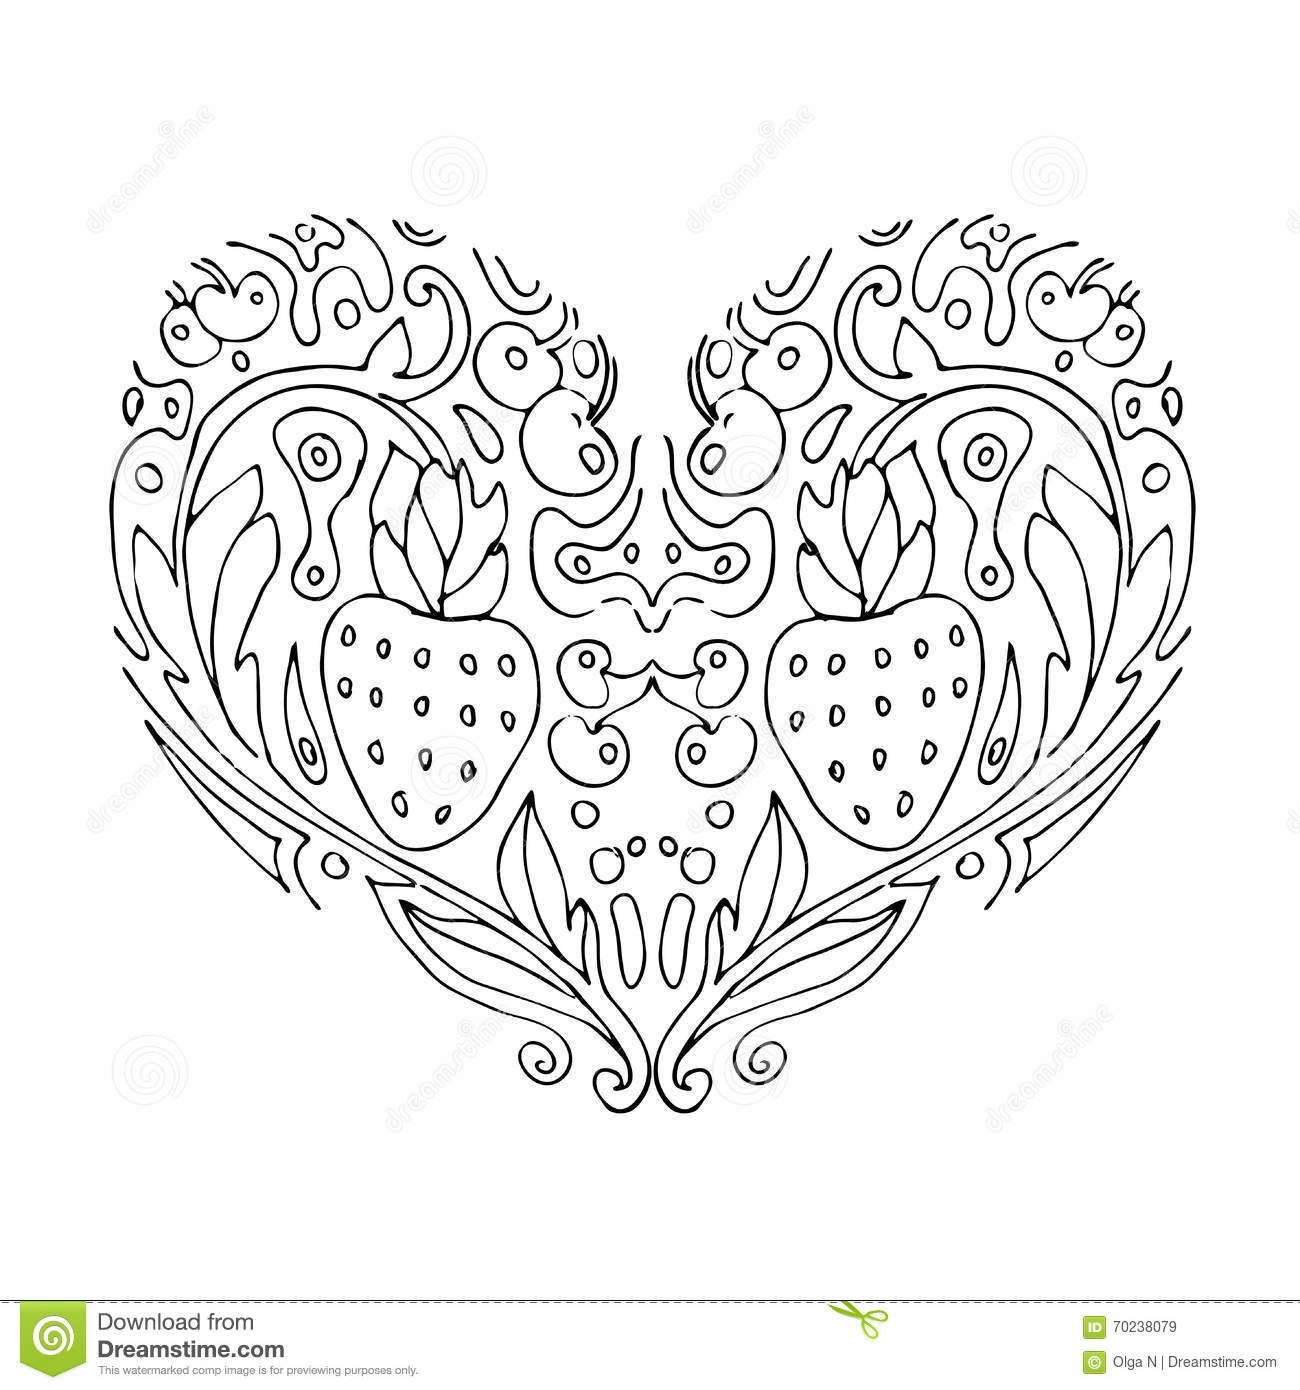 Coloring pages for adults valentines day - Decorative Love Heart With Flowers And Berries Valentines Day Card Coloring Book For Adult